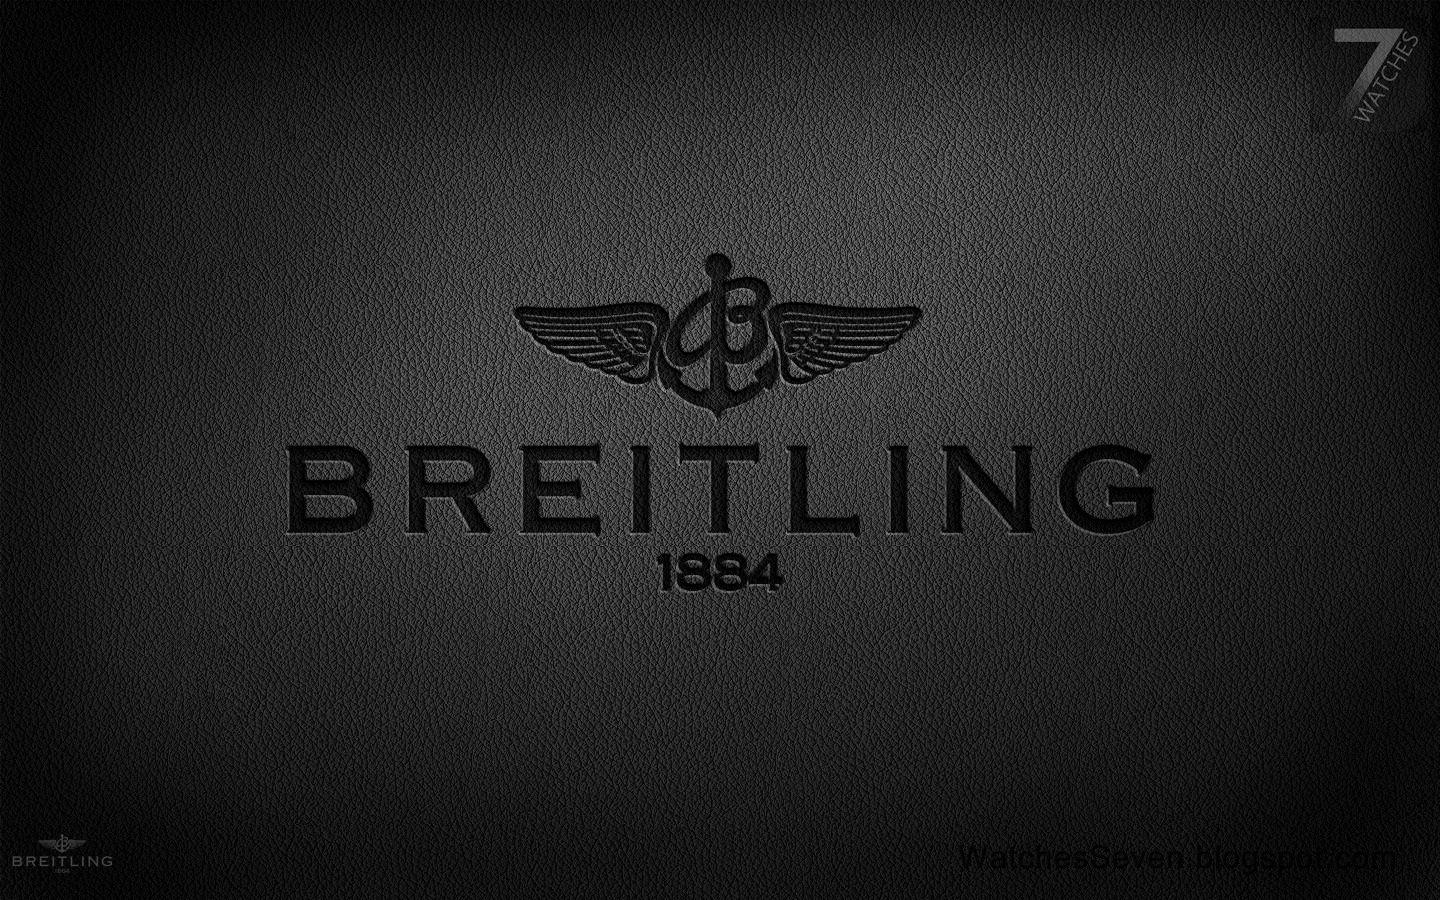 Breitling Logo Wallpaper >> Breitling Wallpapers Wallpaper Cave